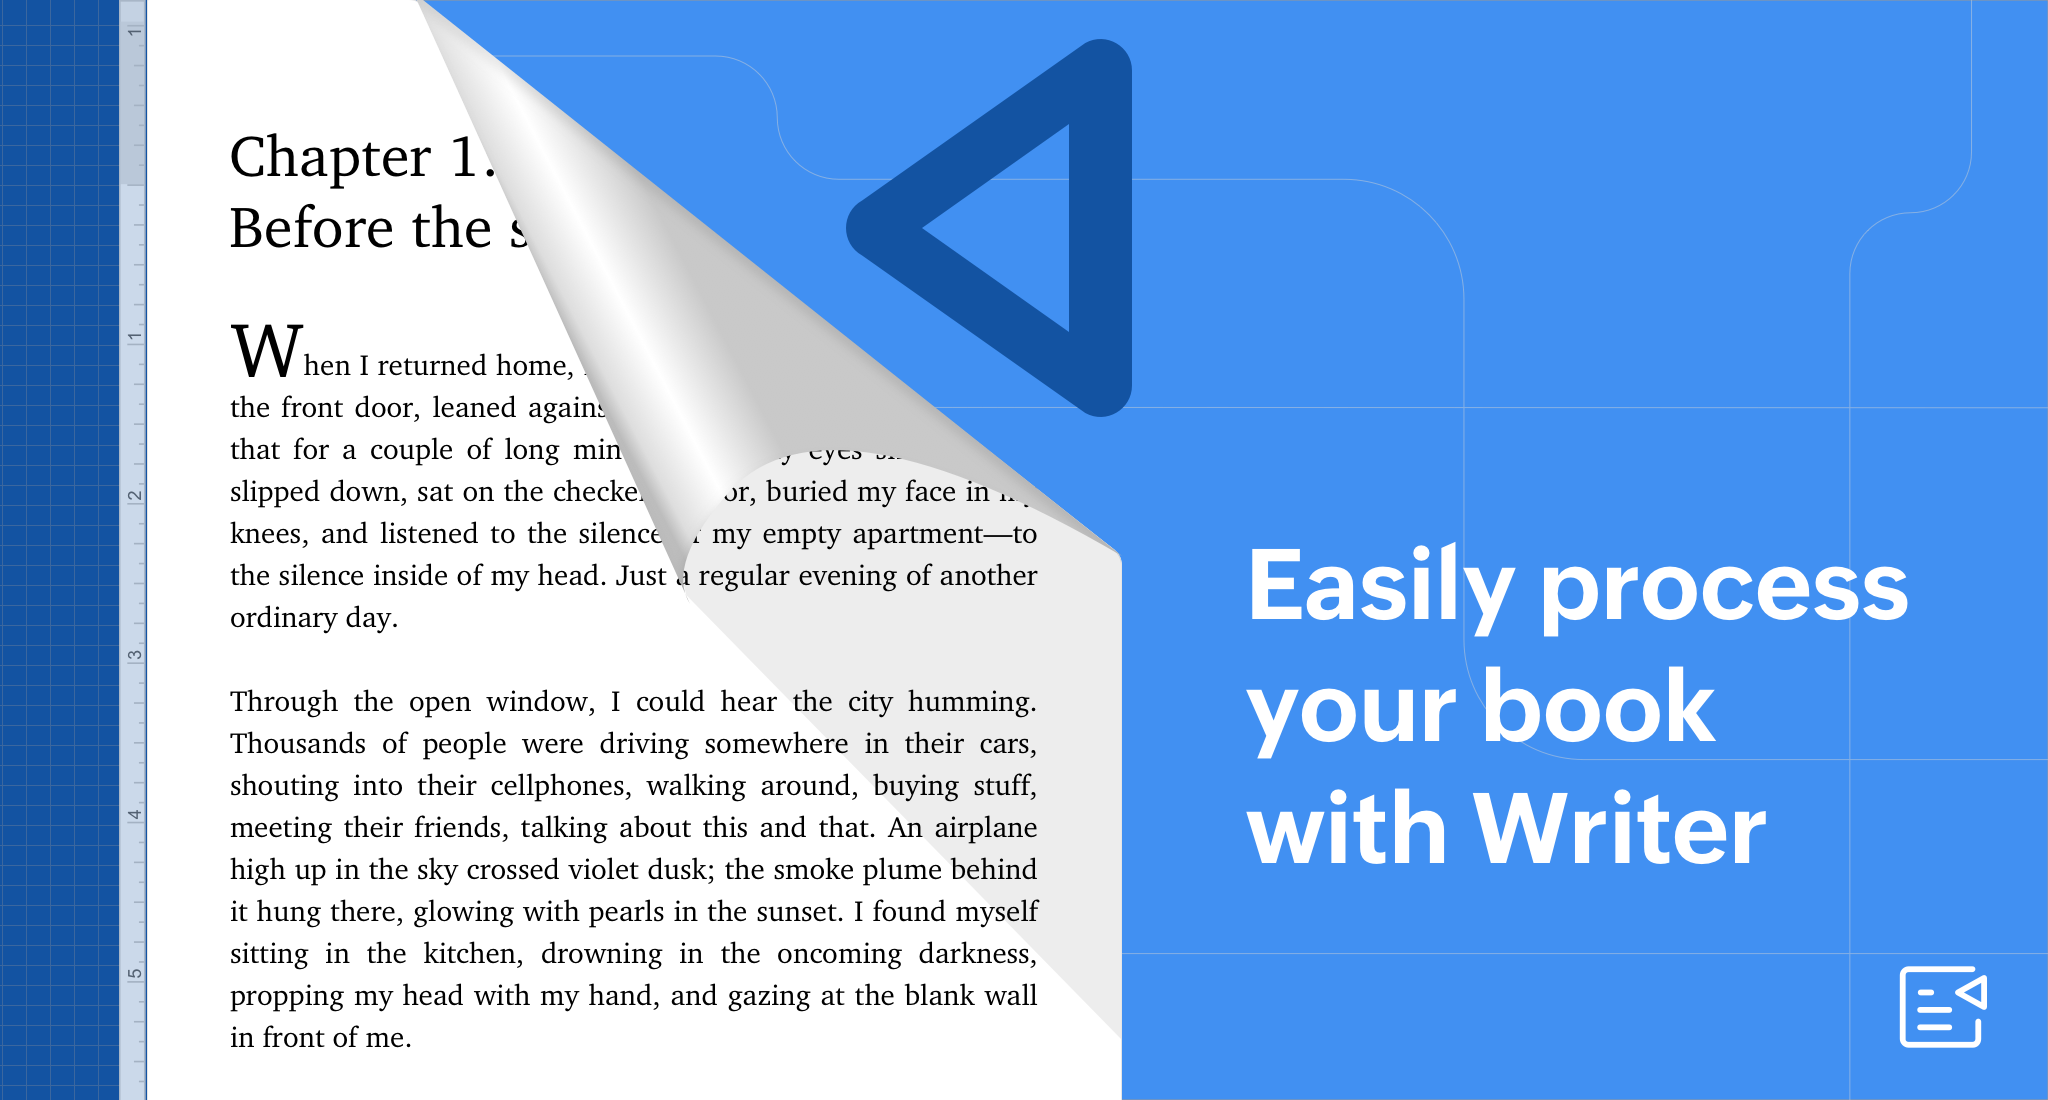 Almost finished writing your book this NaNoWriMo? Now, you can easily process it with Writer!